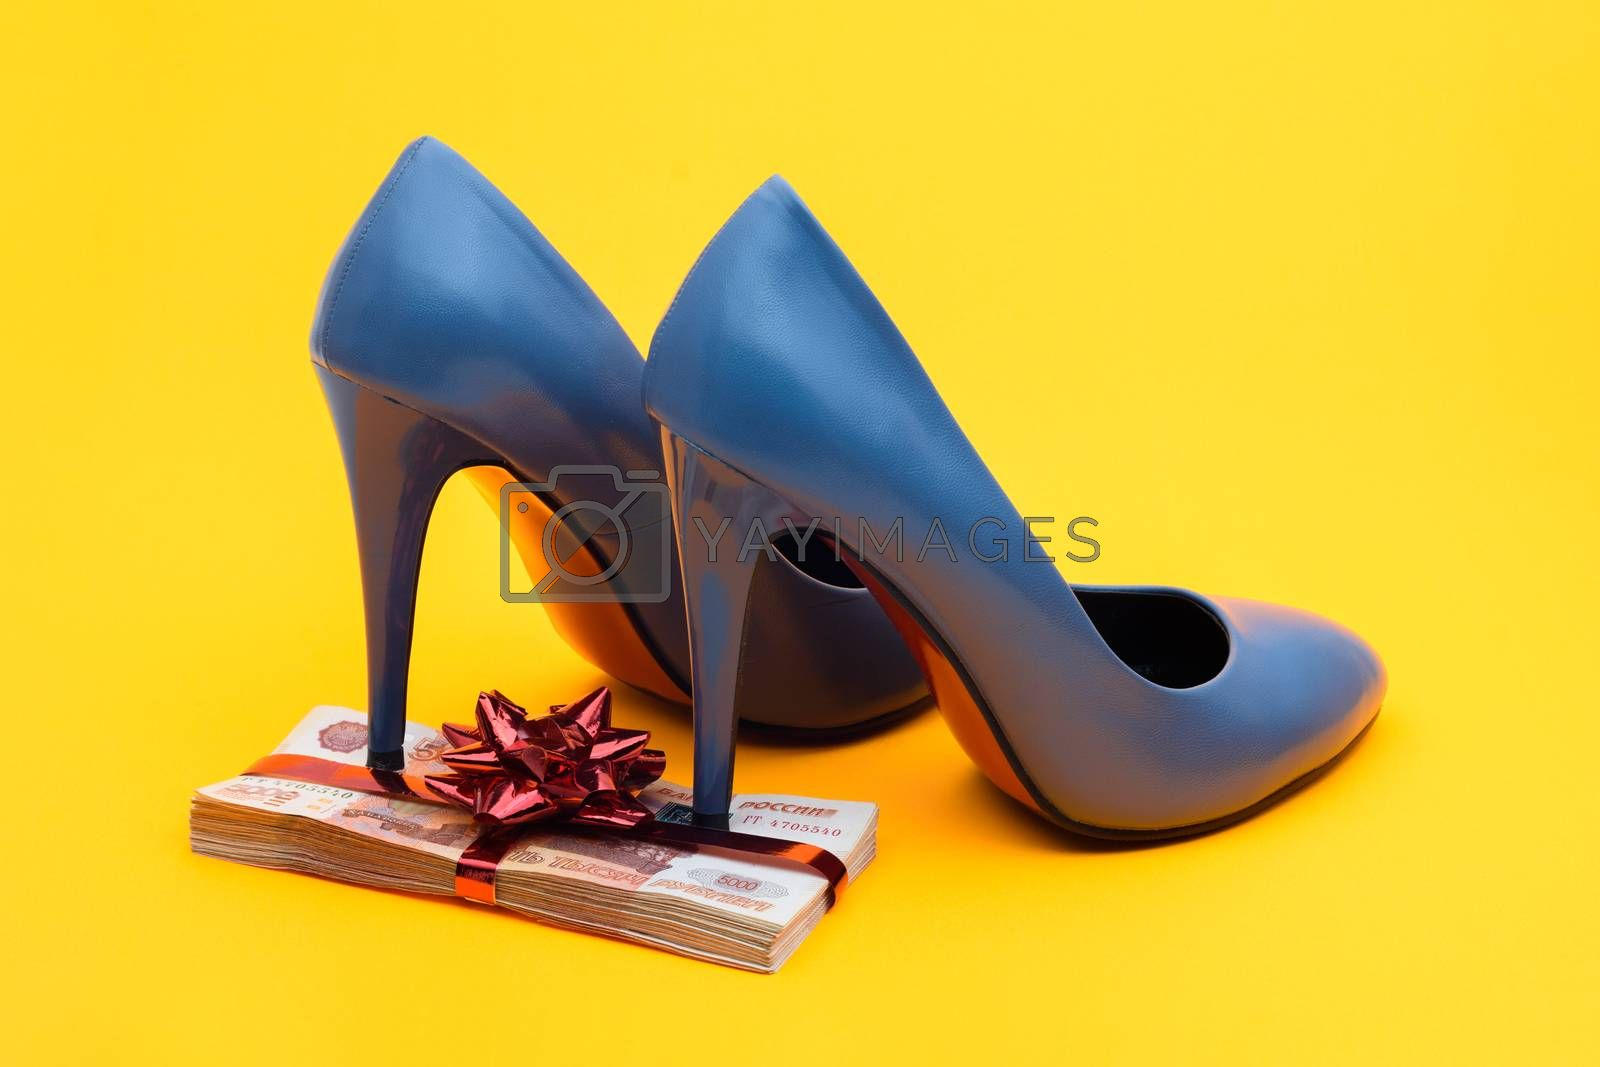 On a gift pack of five thousandth notes are women's blue high-heeled shoes